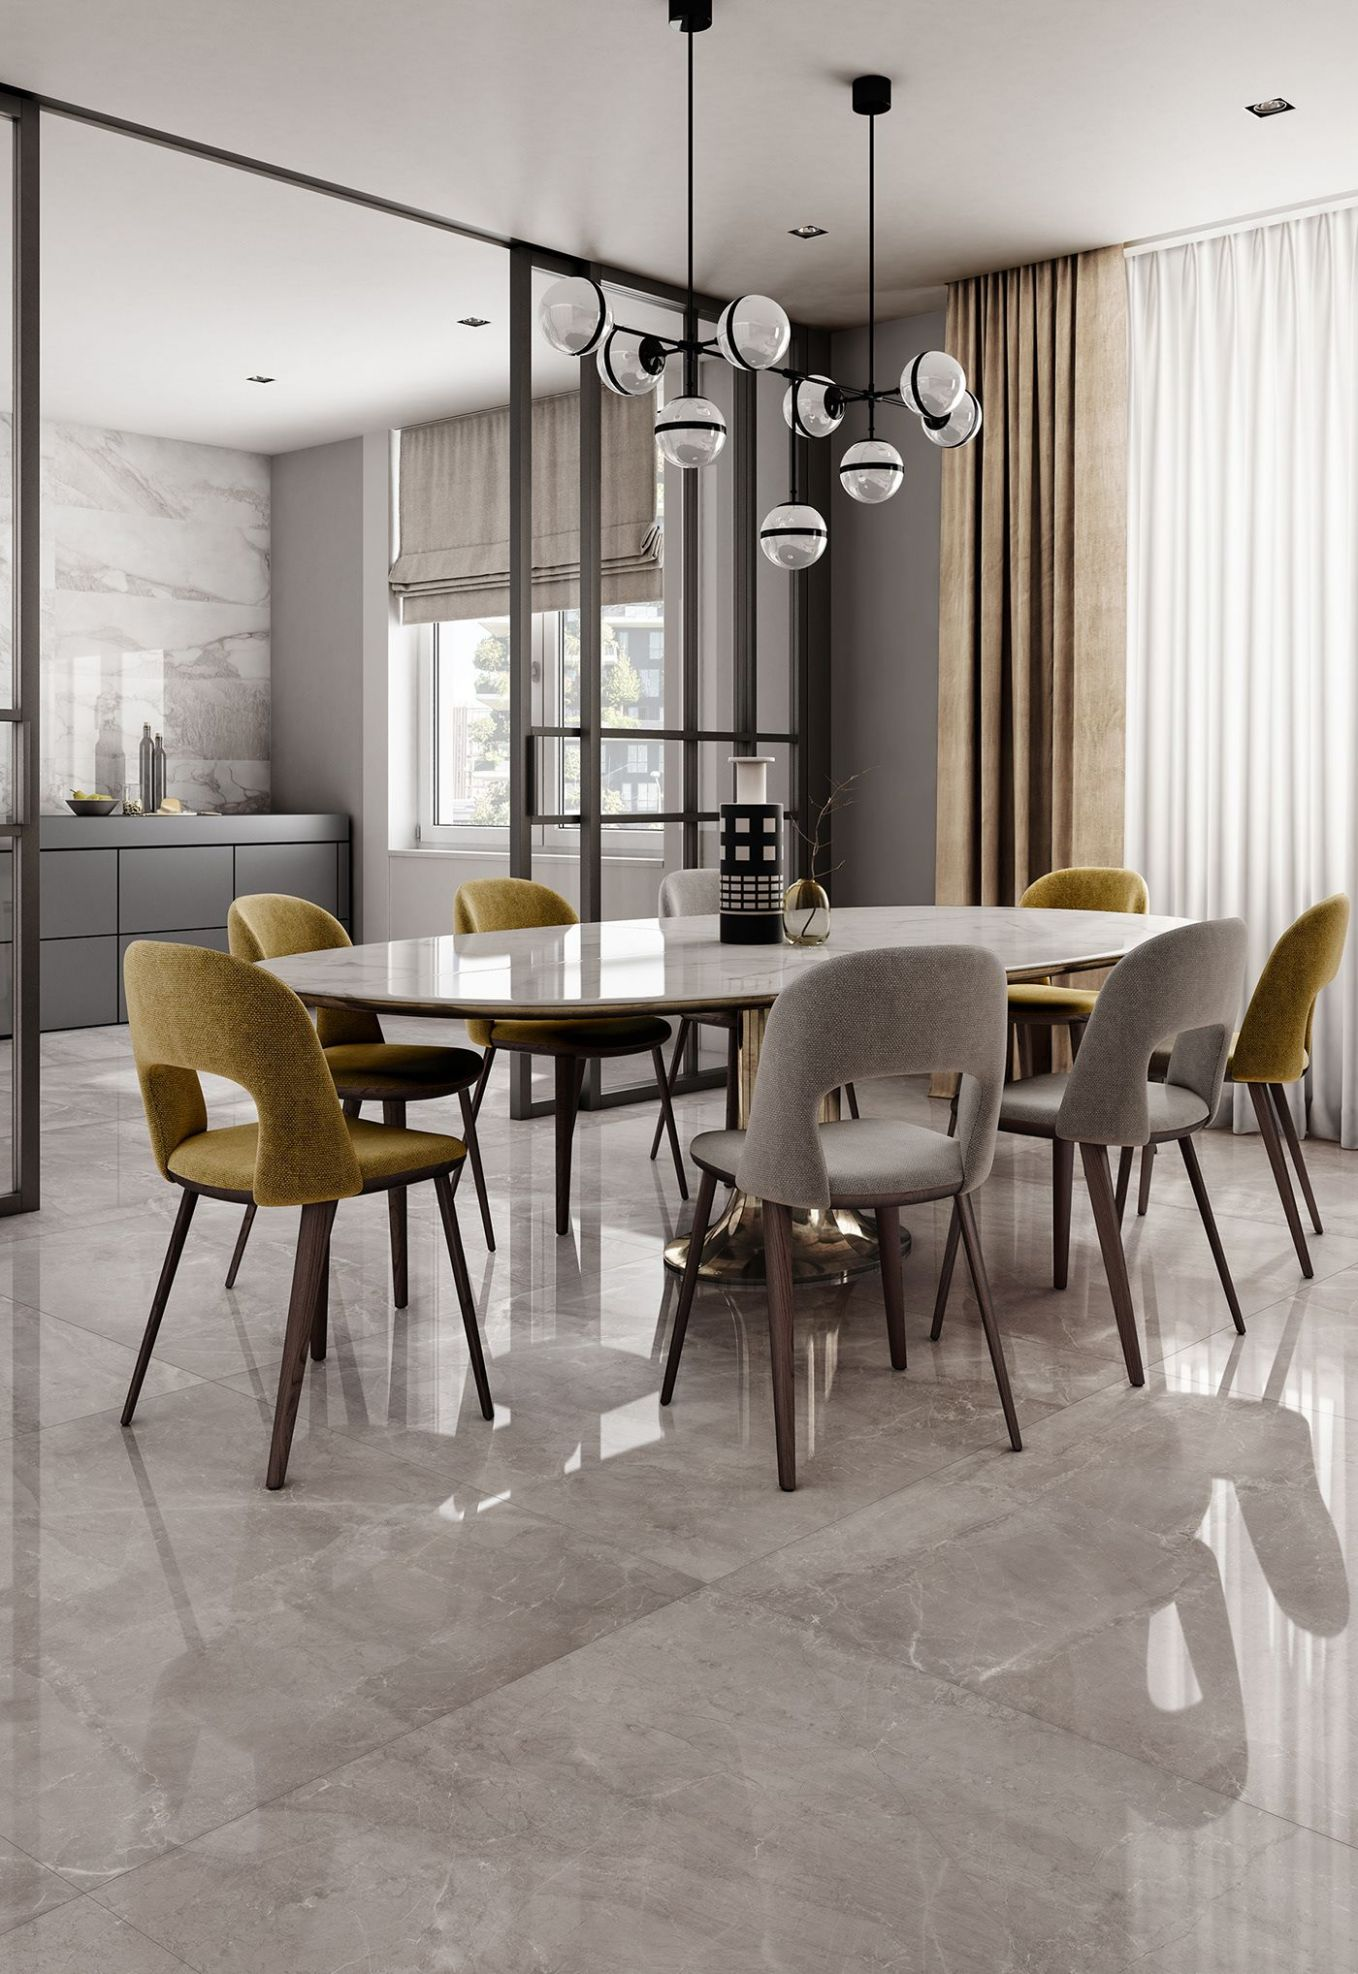 Majestic - Charm with eternal elegance on Behance | Dining room ..